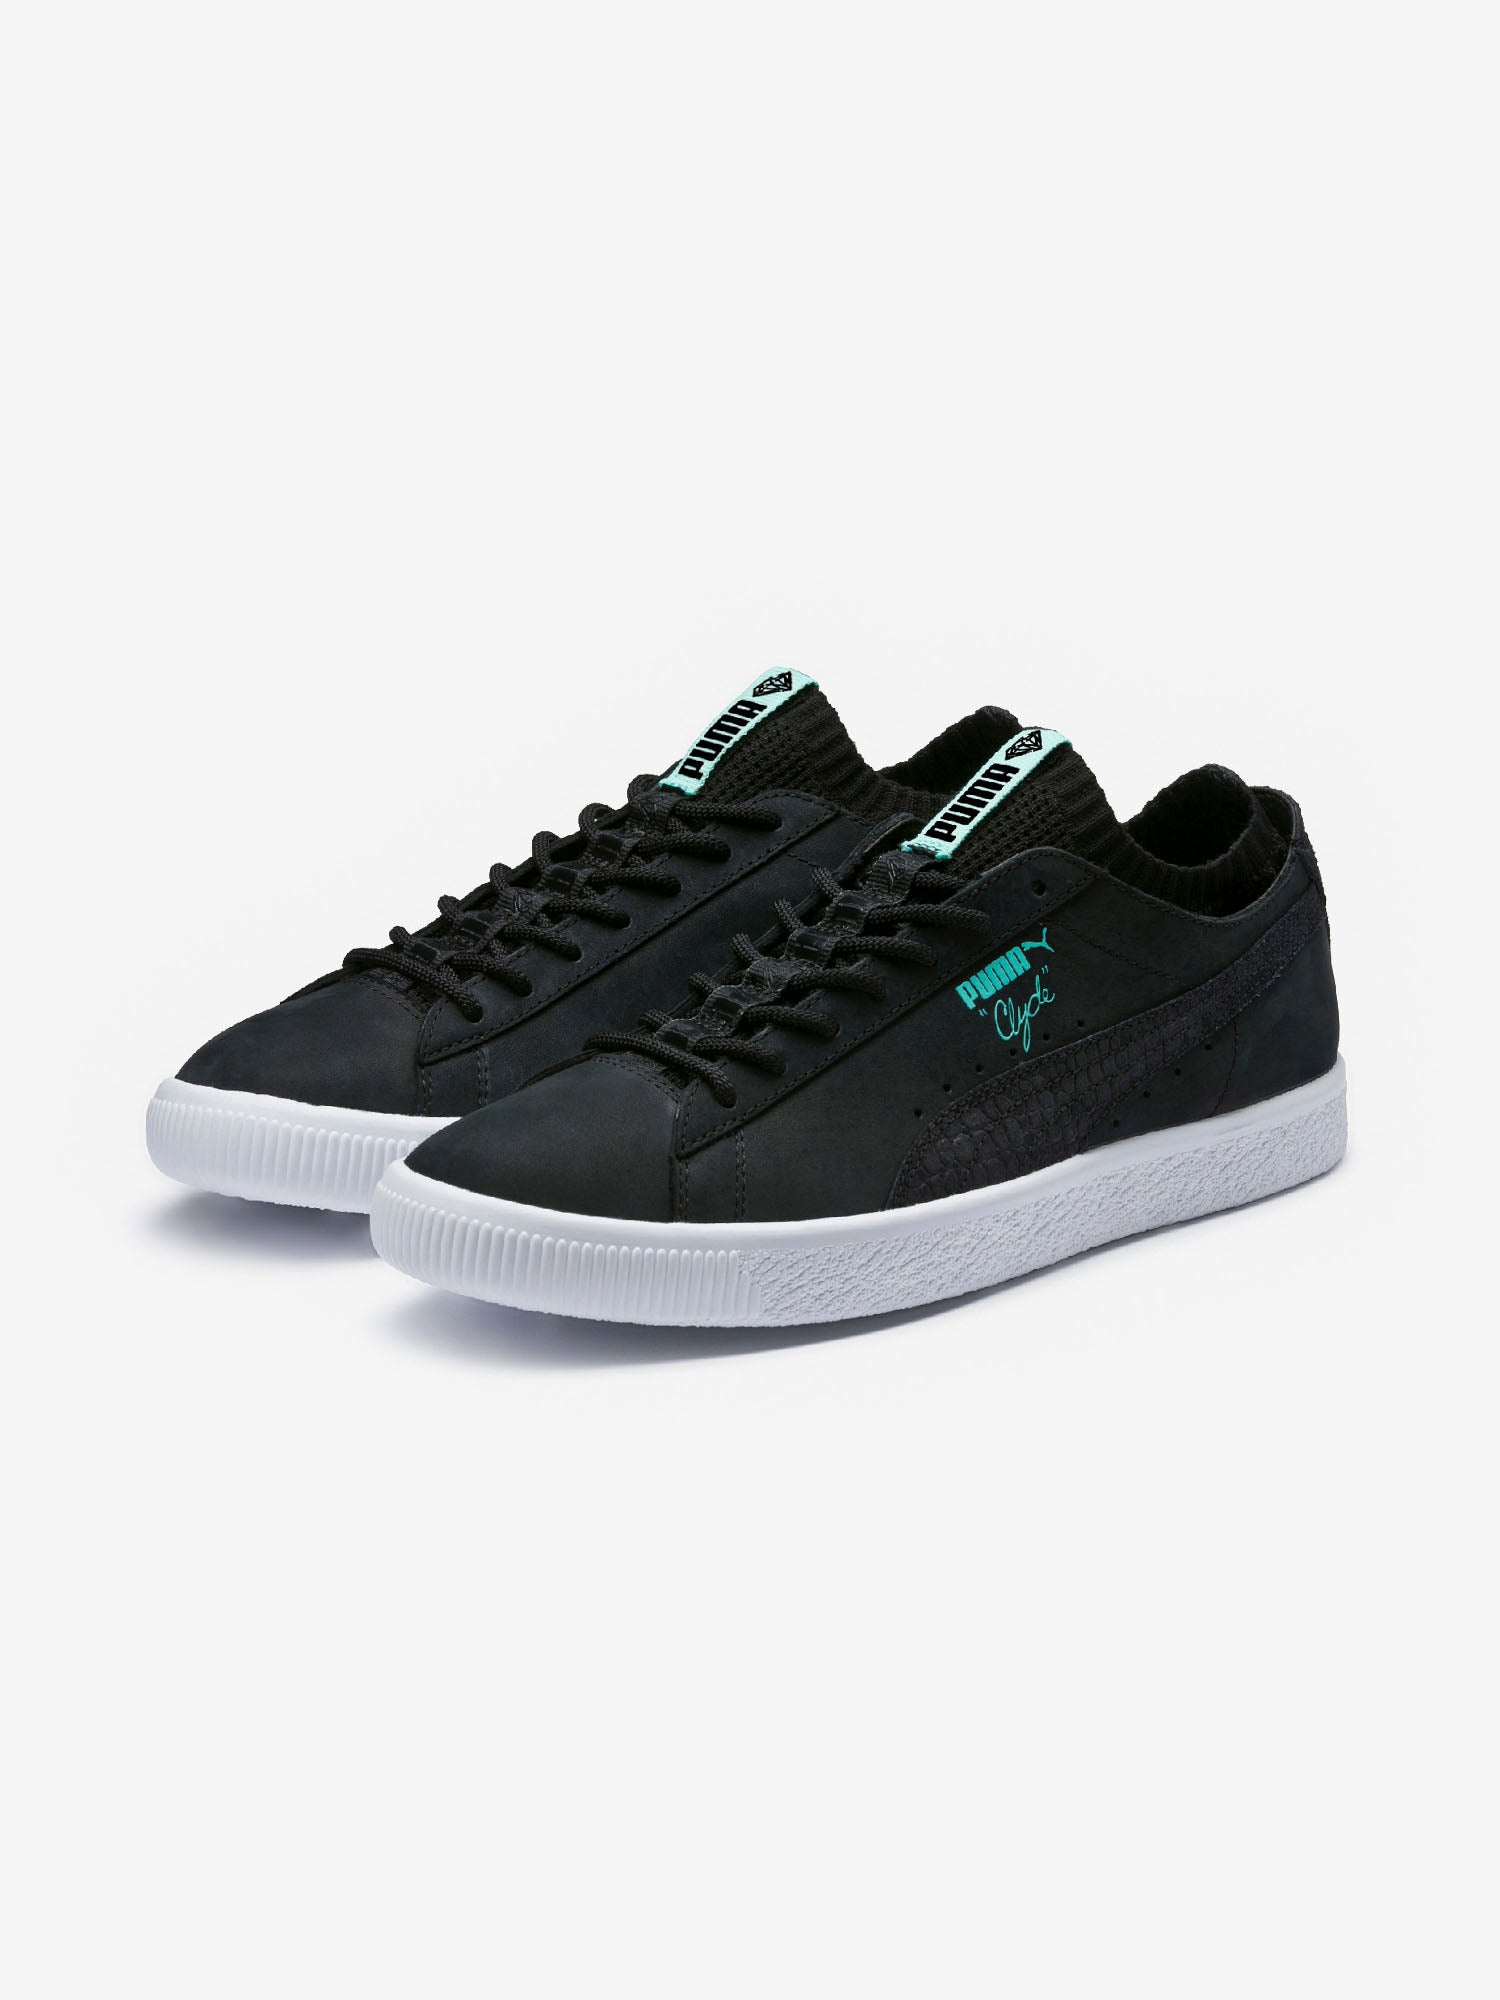 5a8c069ca14 PUMA X DIAMOND CLYDE LO - Diamond Supply Co.